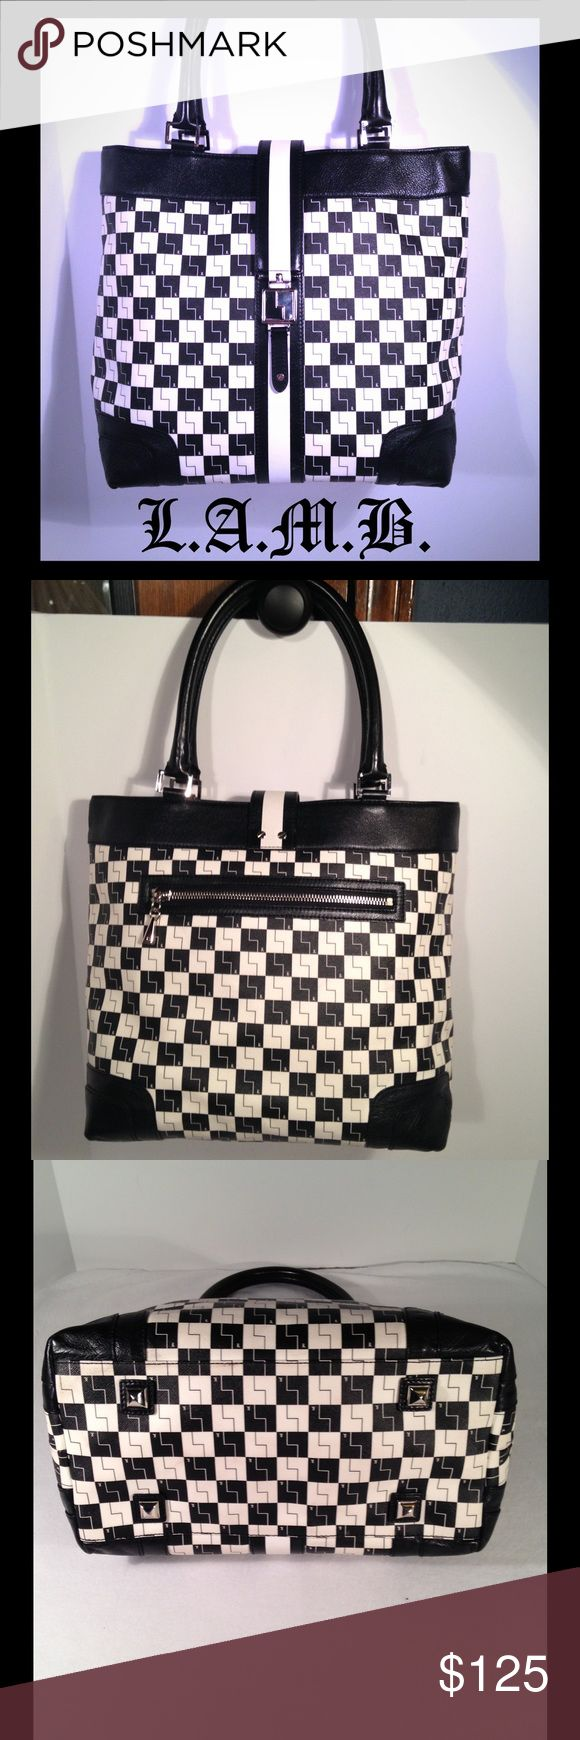 """L.A.M.B. Checkerboard Westfield Tote♥️ Beautiful tote in excellent condition with minor preowned wear pictured, some smudges on exterior, hardly noticeable and marks on stripe, but when buckle is closed you cannot see this. Genuine leather and pvc. Silver hardware. Exterior back zippered pocket. Interior zip, slip, envelope & cell pockets. Signature striped interior lining. Protective feet on bottom of bag. Strap drop 7"""". Retail price $575.00. Please carefully review all photos & ask any…"""